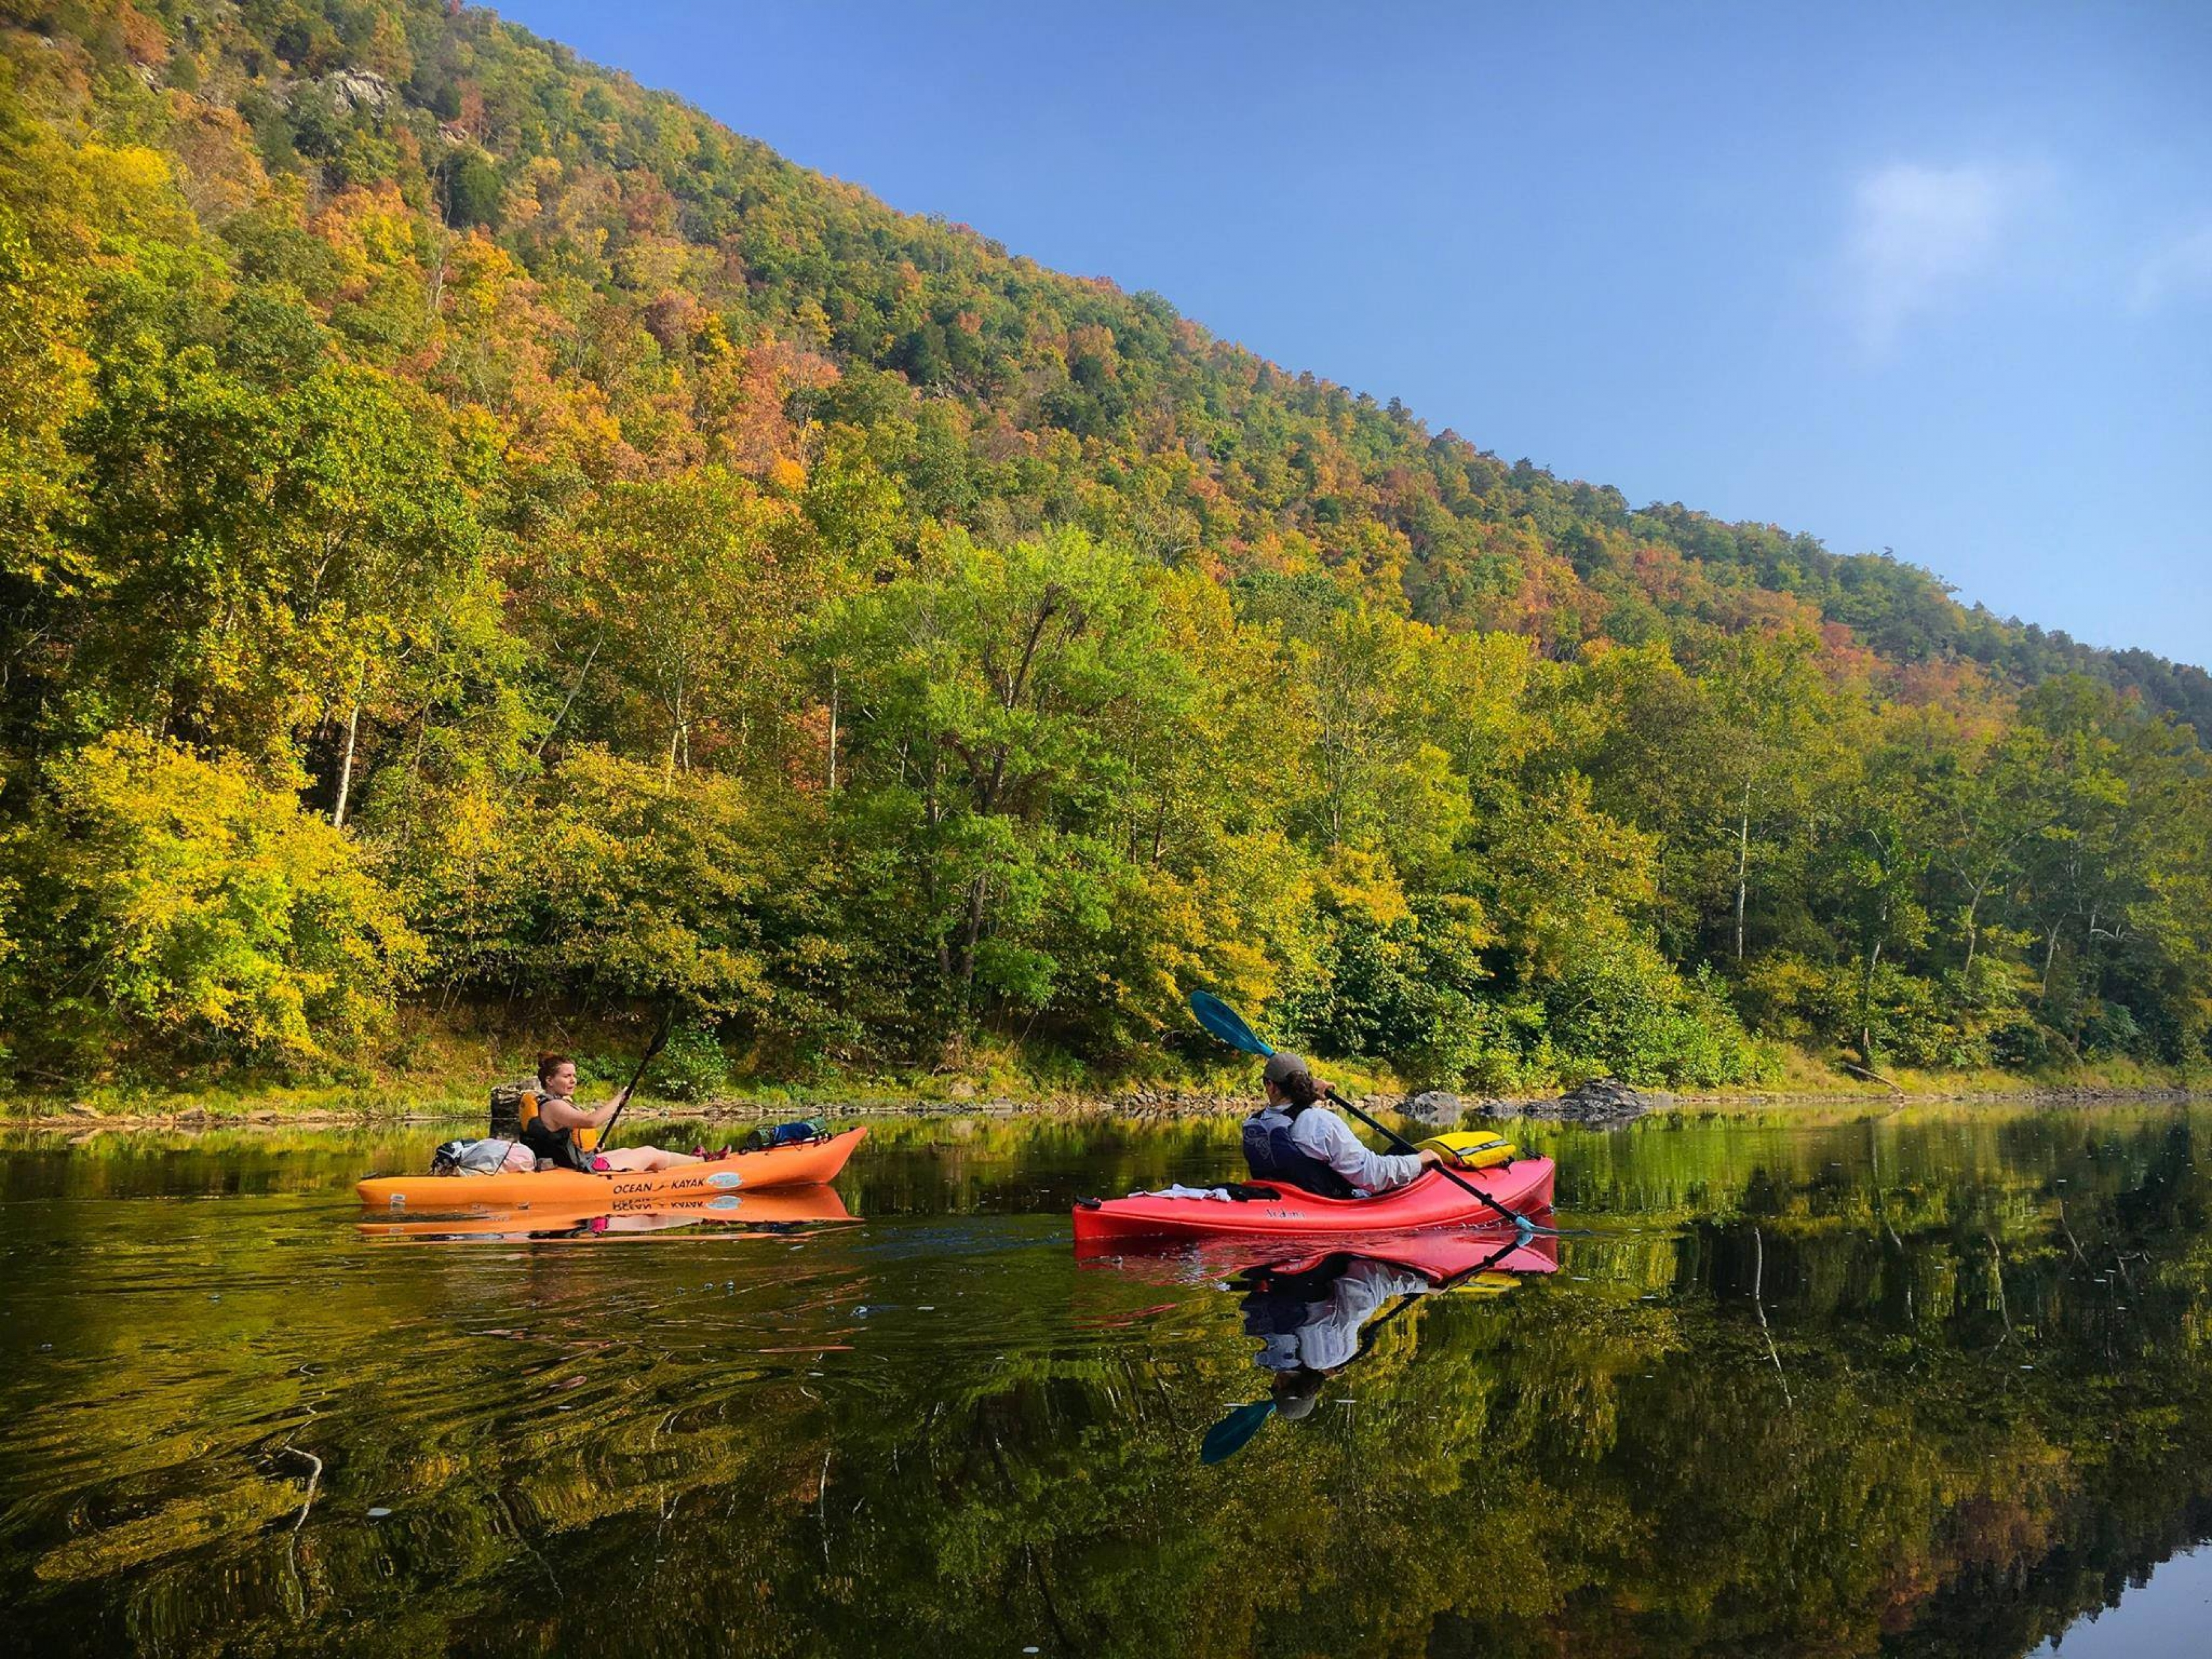 Two kayakers paddling down the autumn-tree-lined Potomac River along the Potomac Heritage National Scenic Trail